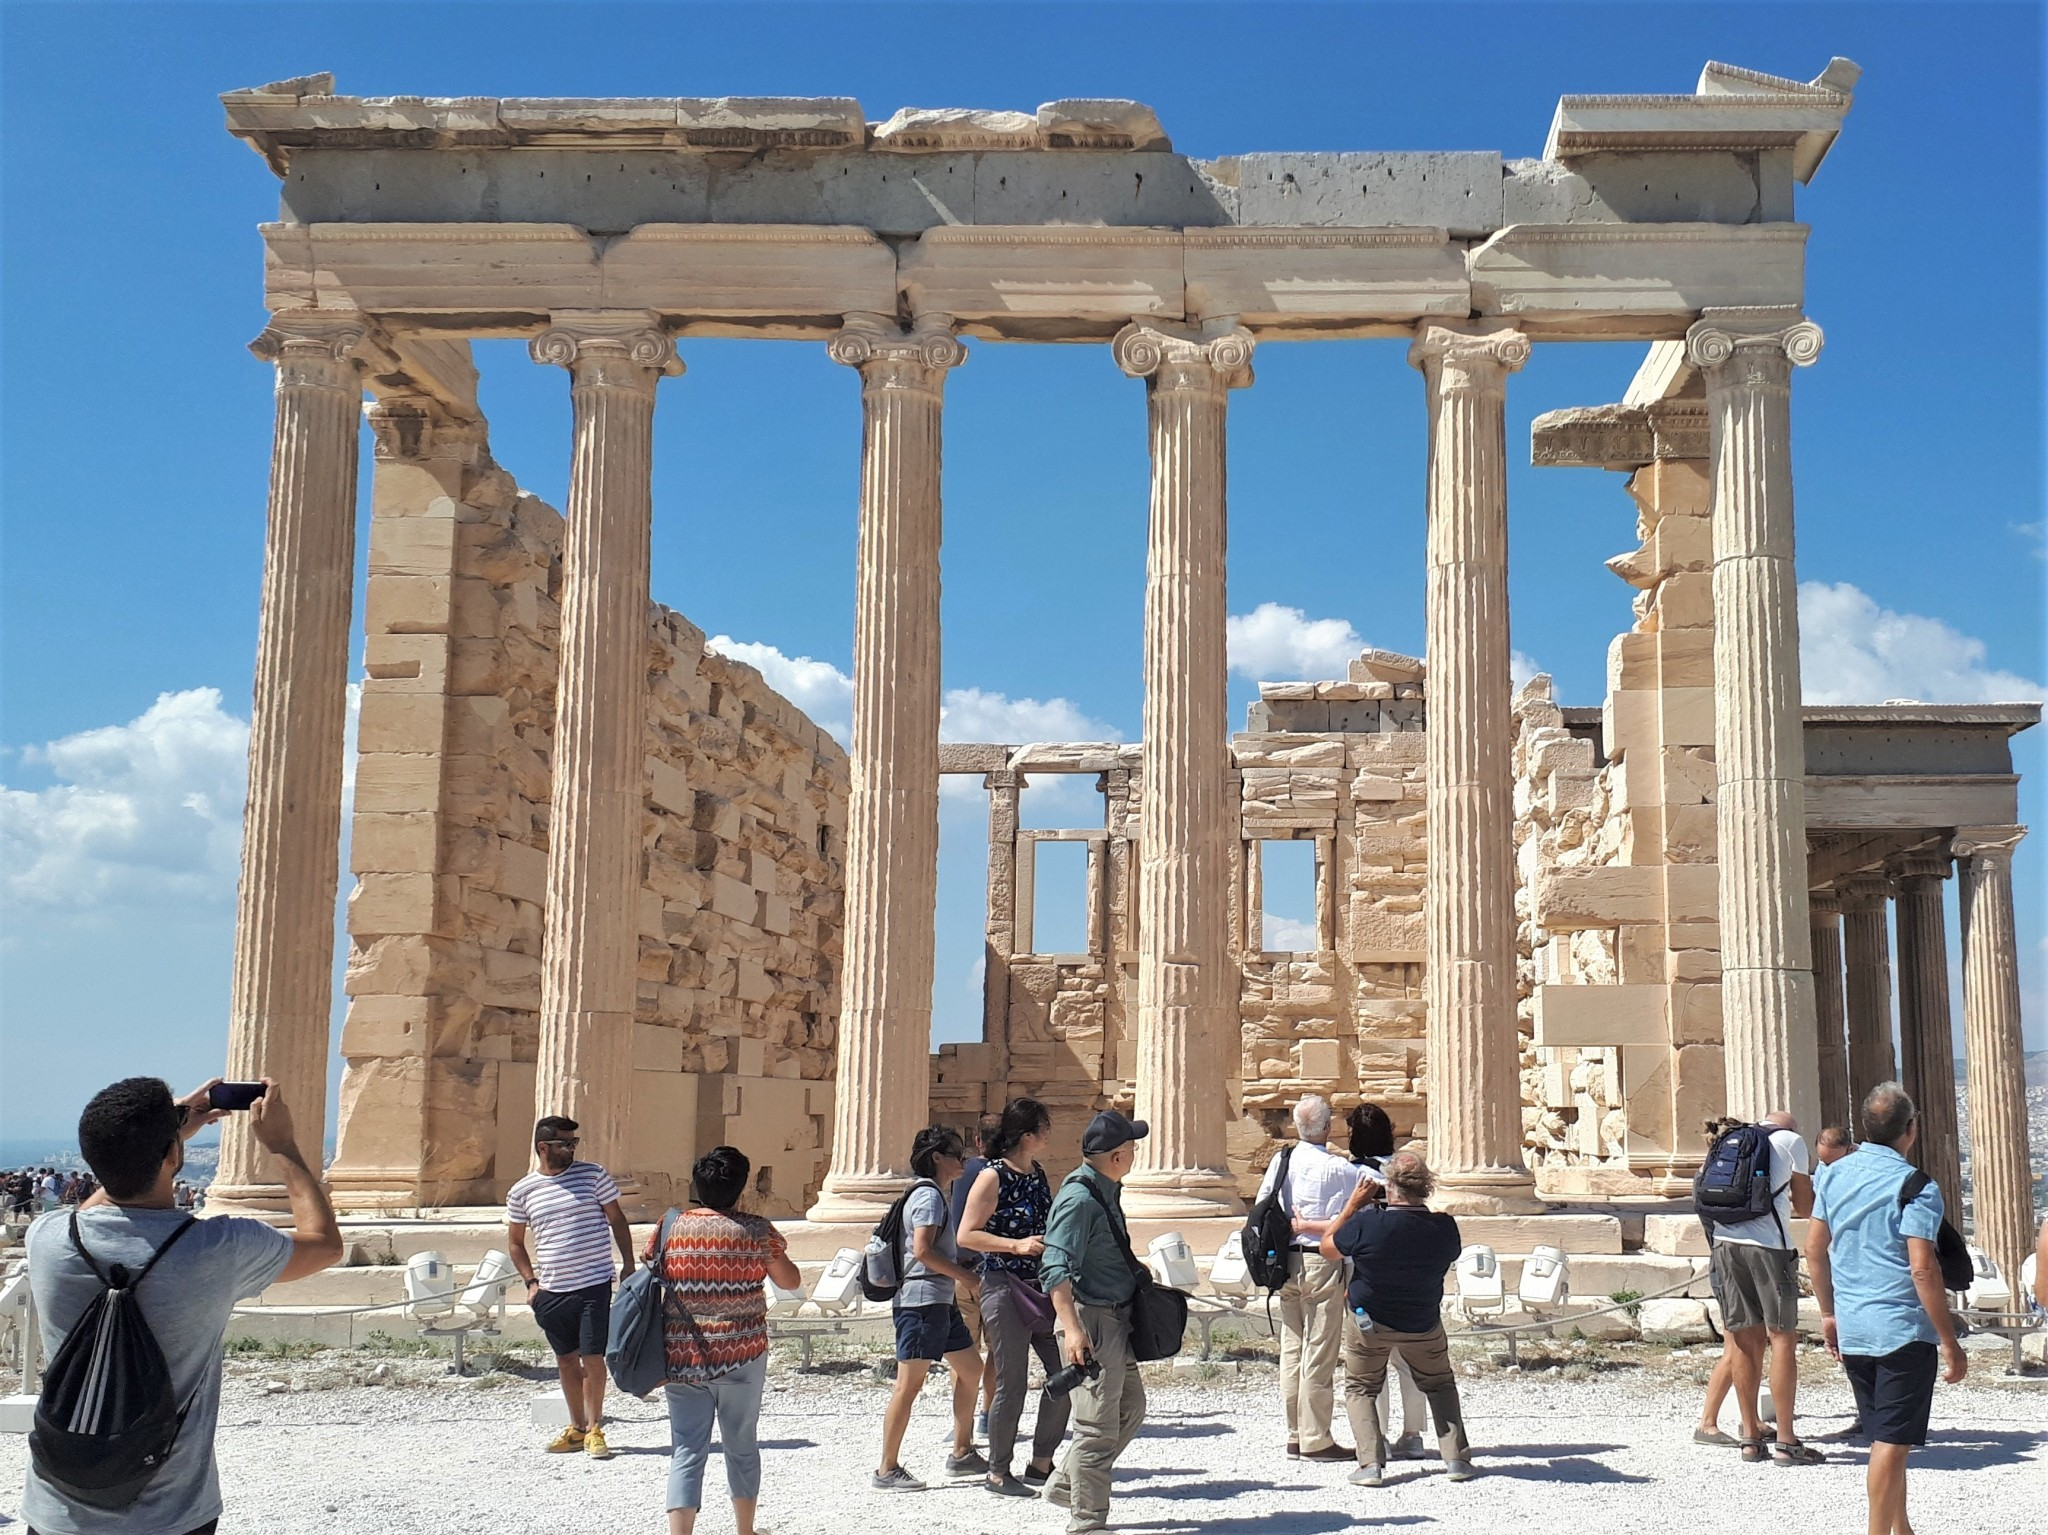 A crowd of tourists spoiling the peaceful atmosphere of an ancient Greek columned ruin.